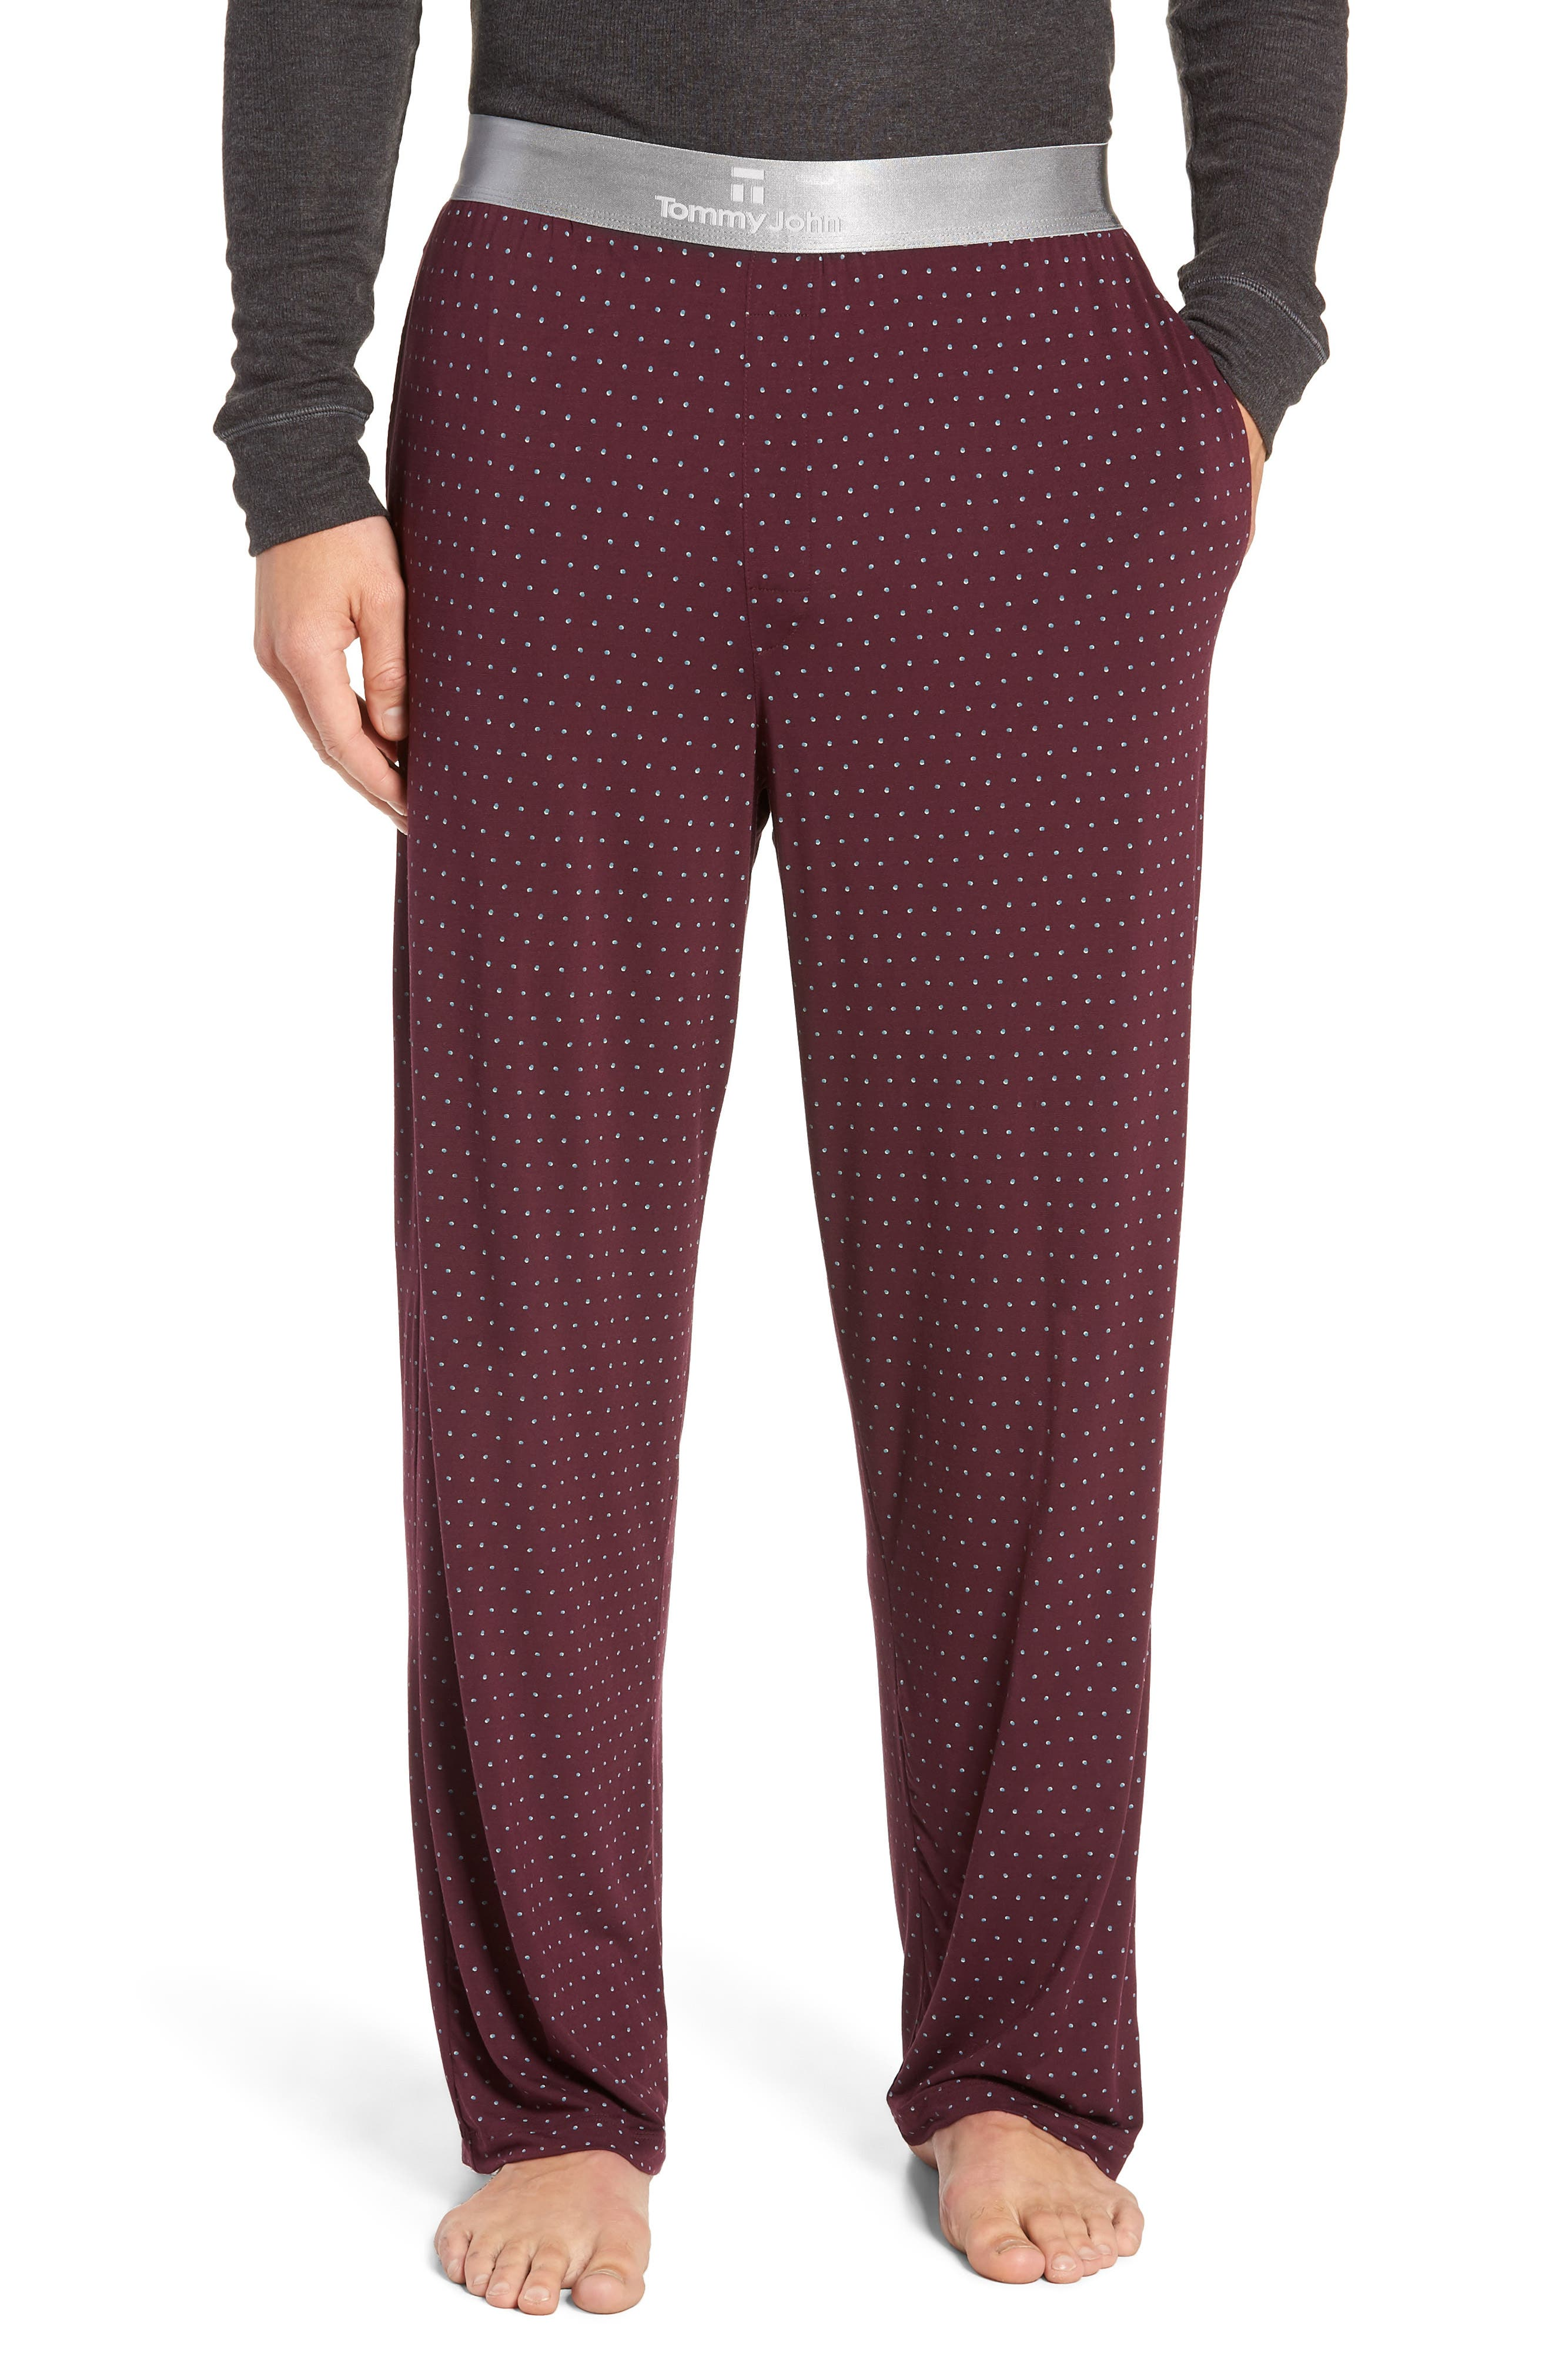 e59101b75faa Men s Tommy John Pajamas  Lounge   Pajamas